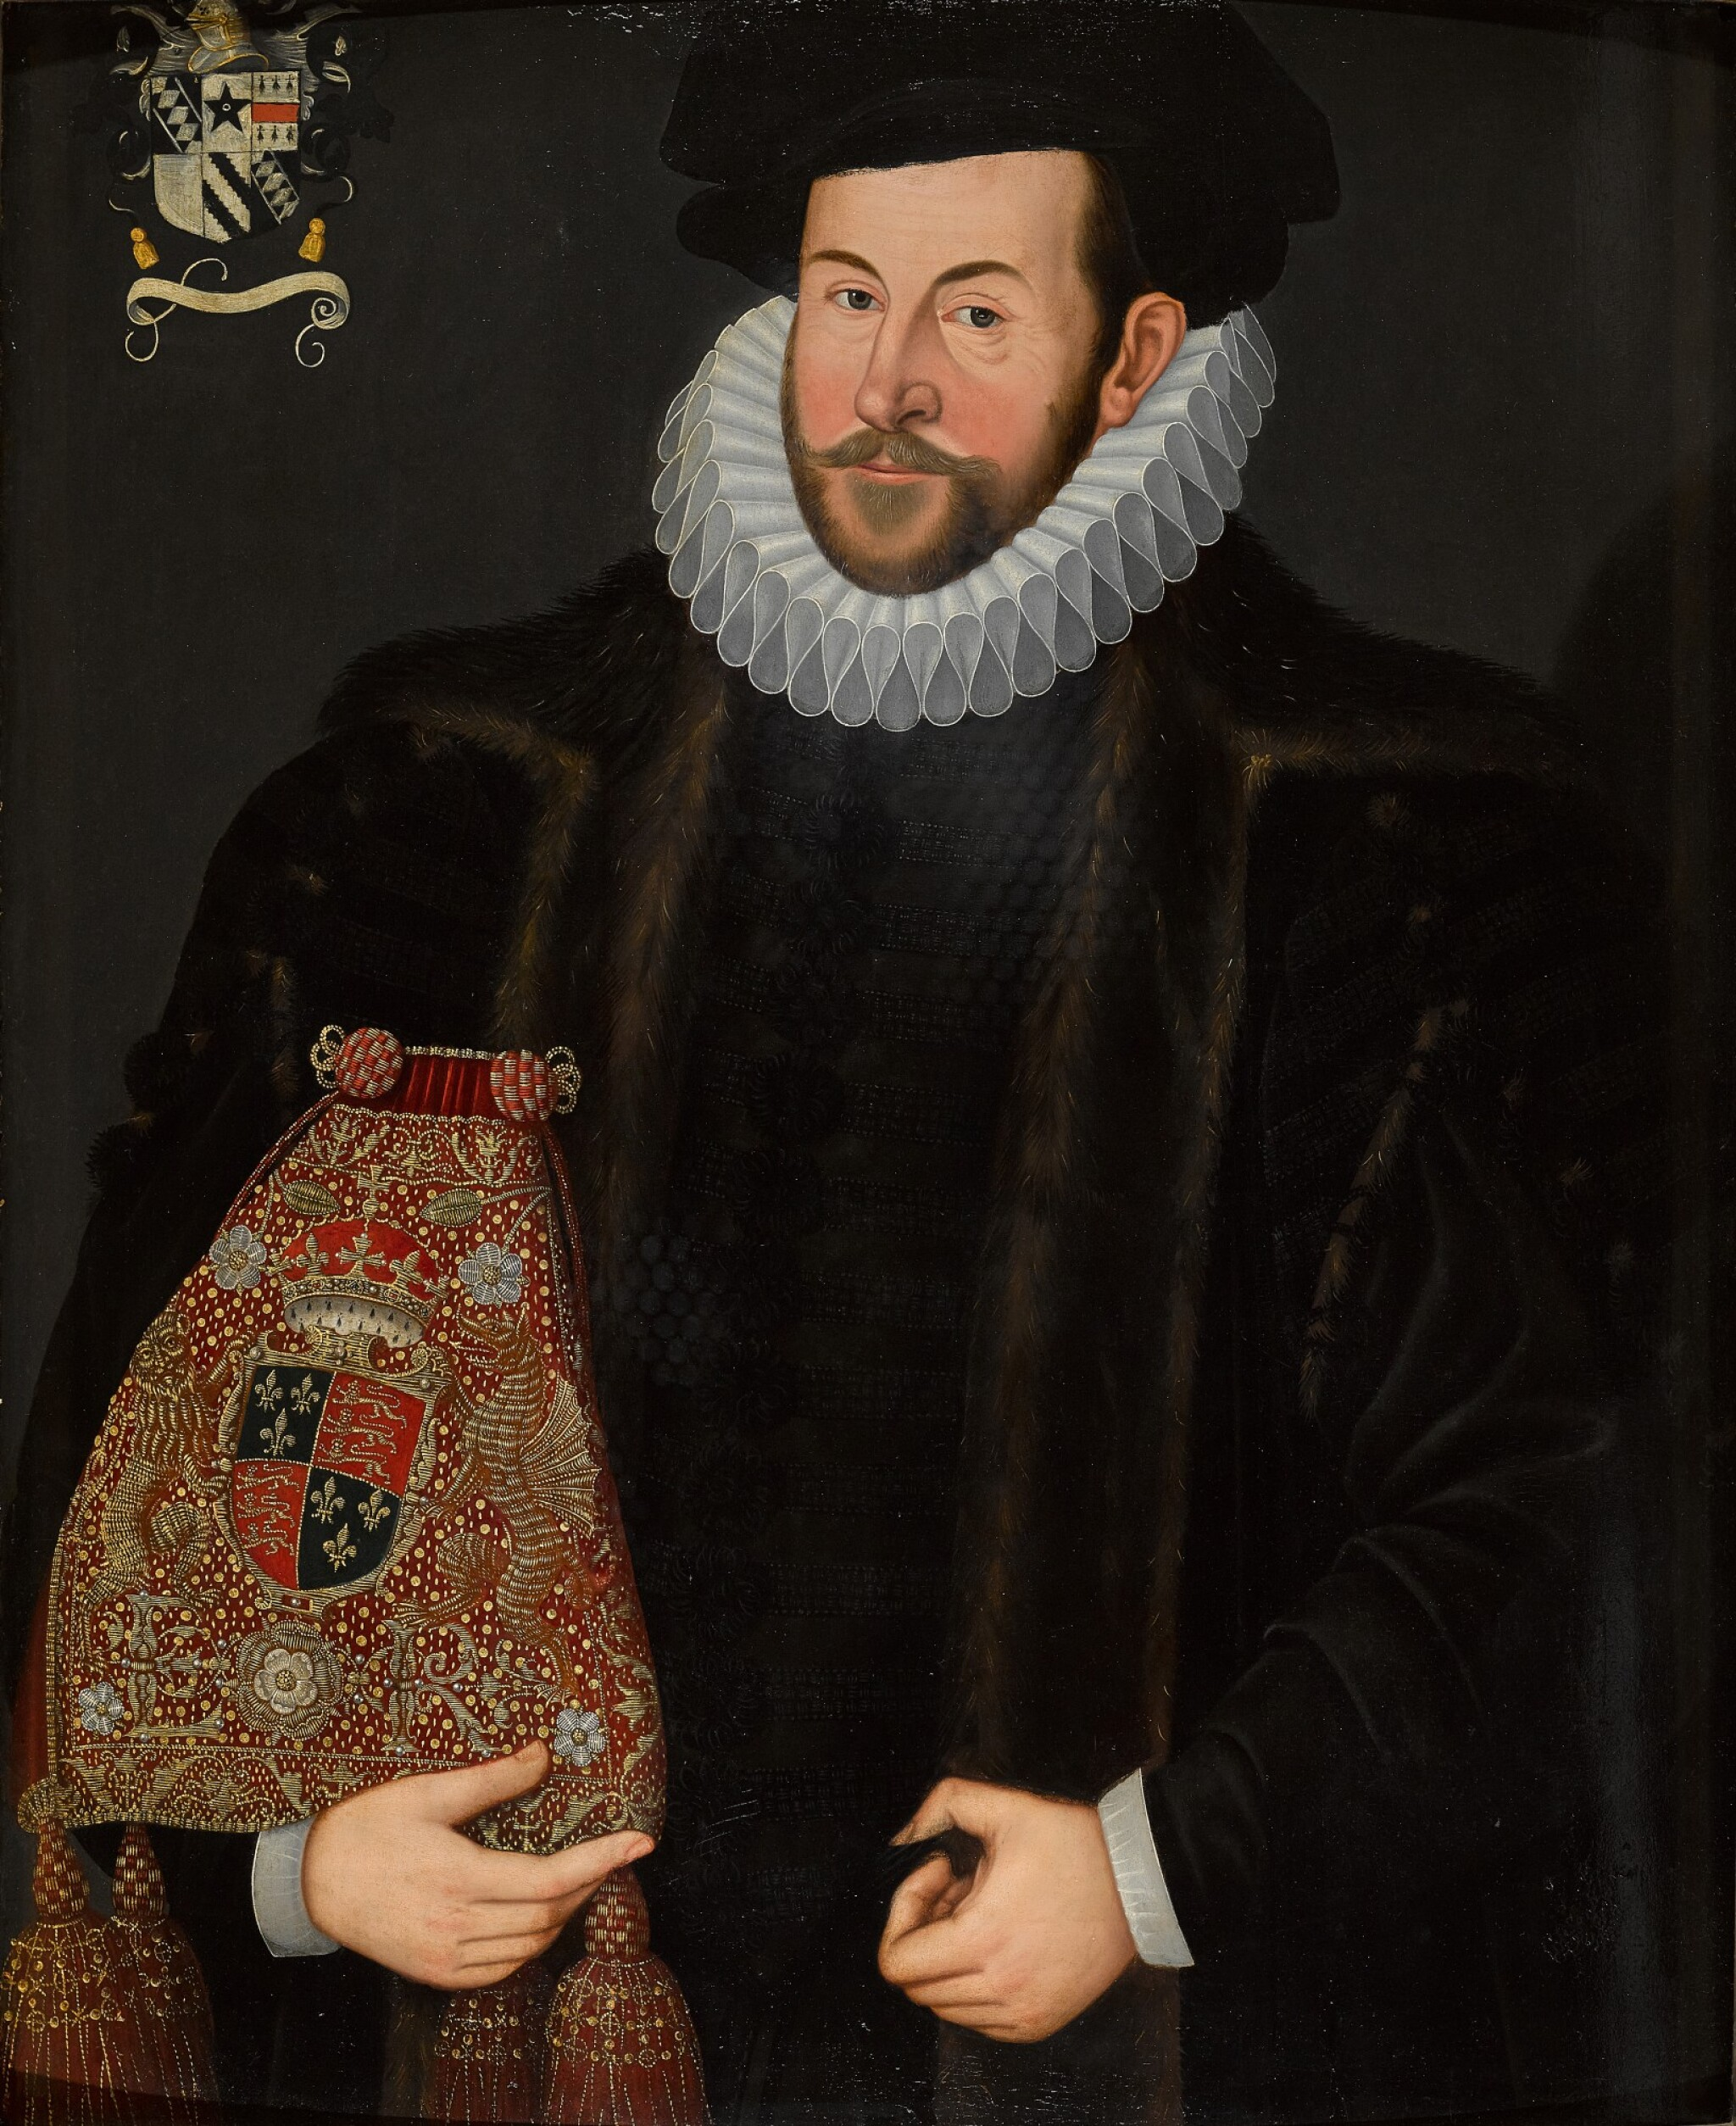 View full screen - View 1 of Lot 67. THE UNKNOWN FOLLOWER OF HIERONYMUS CUSTODIS | PORTRAIT OF SIR JOHN PUCKERING OF KEW, SURREY AND WESTON (C. 1544–1596), SPEAKER OF THE HOUSE OF COMMONS AND LORD KEEPER OF THE PRIVY SEAL.